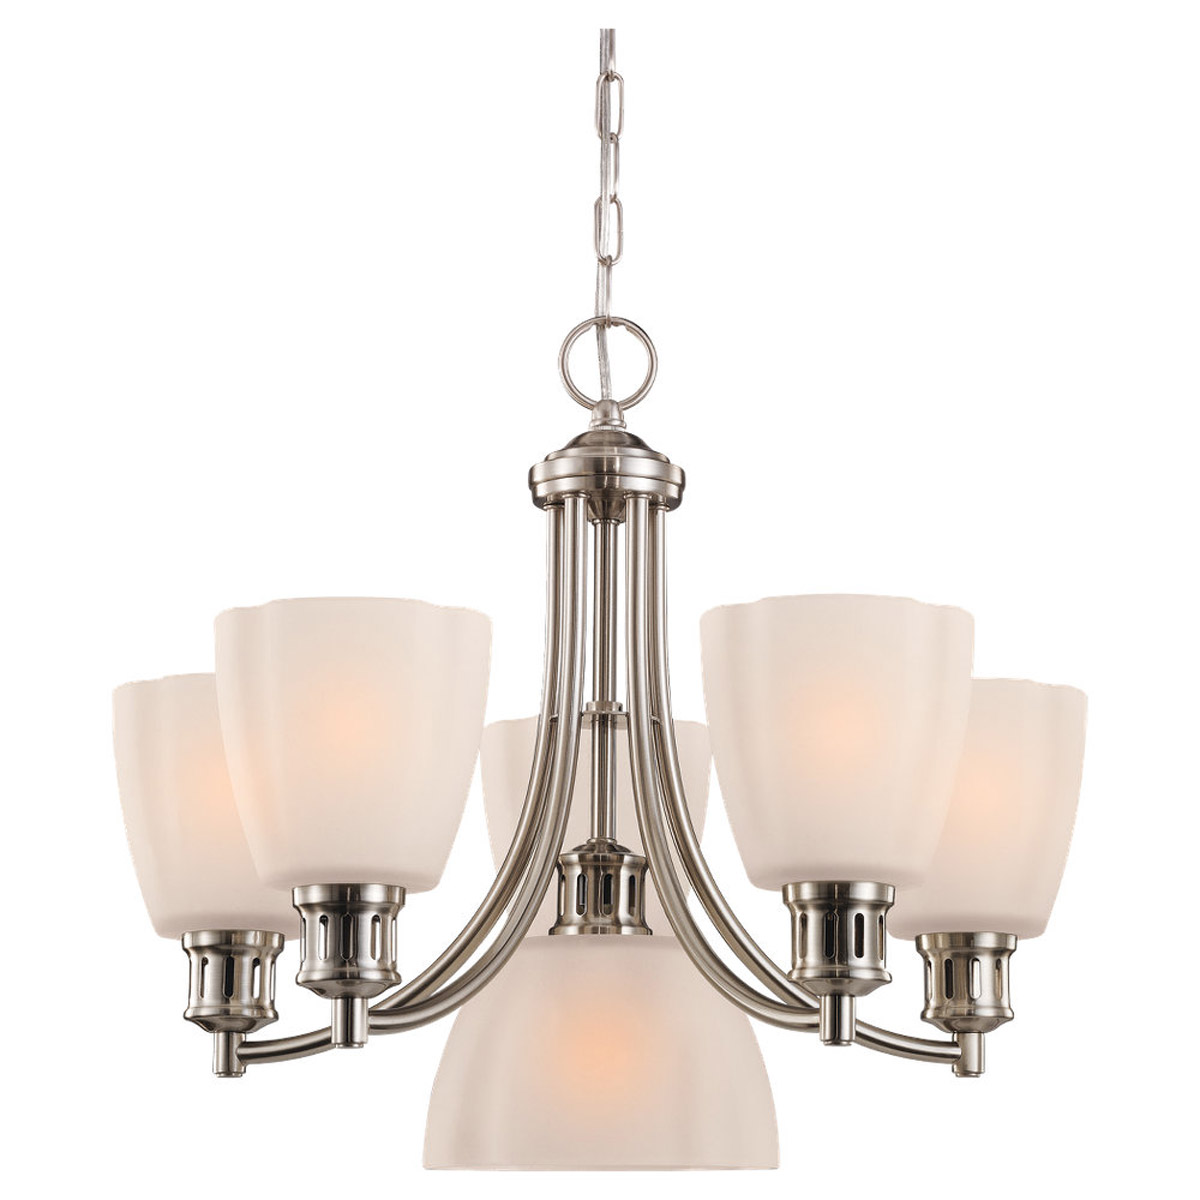 Sea Gull Lighting Century 6 Light Chandelier in Brushed Nickel 31476-962